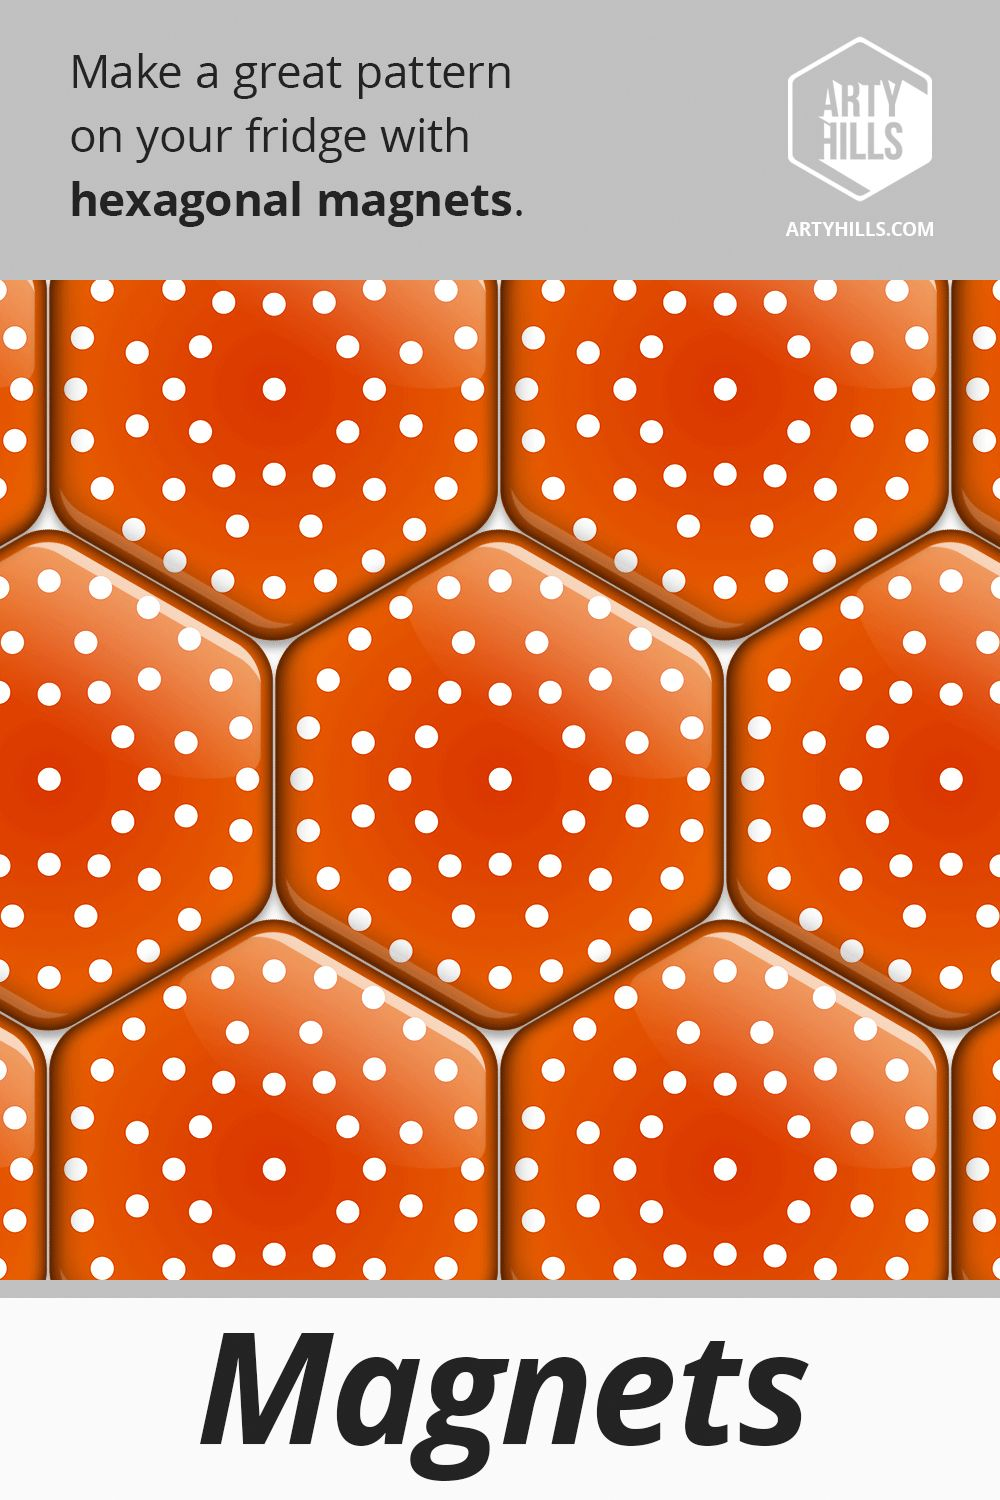 Hexagonal Magnet From Artyhills Autumn Collection Decorate your fridge or any other metallic surface with a playful hexagonal magnet which is perfectly strong to hold a n...